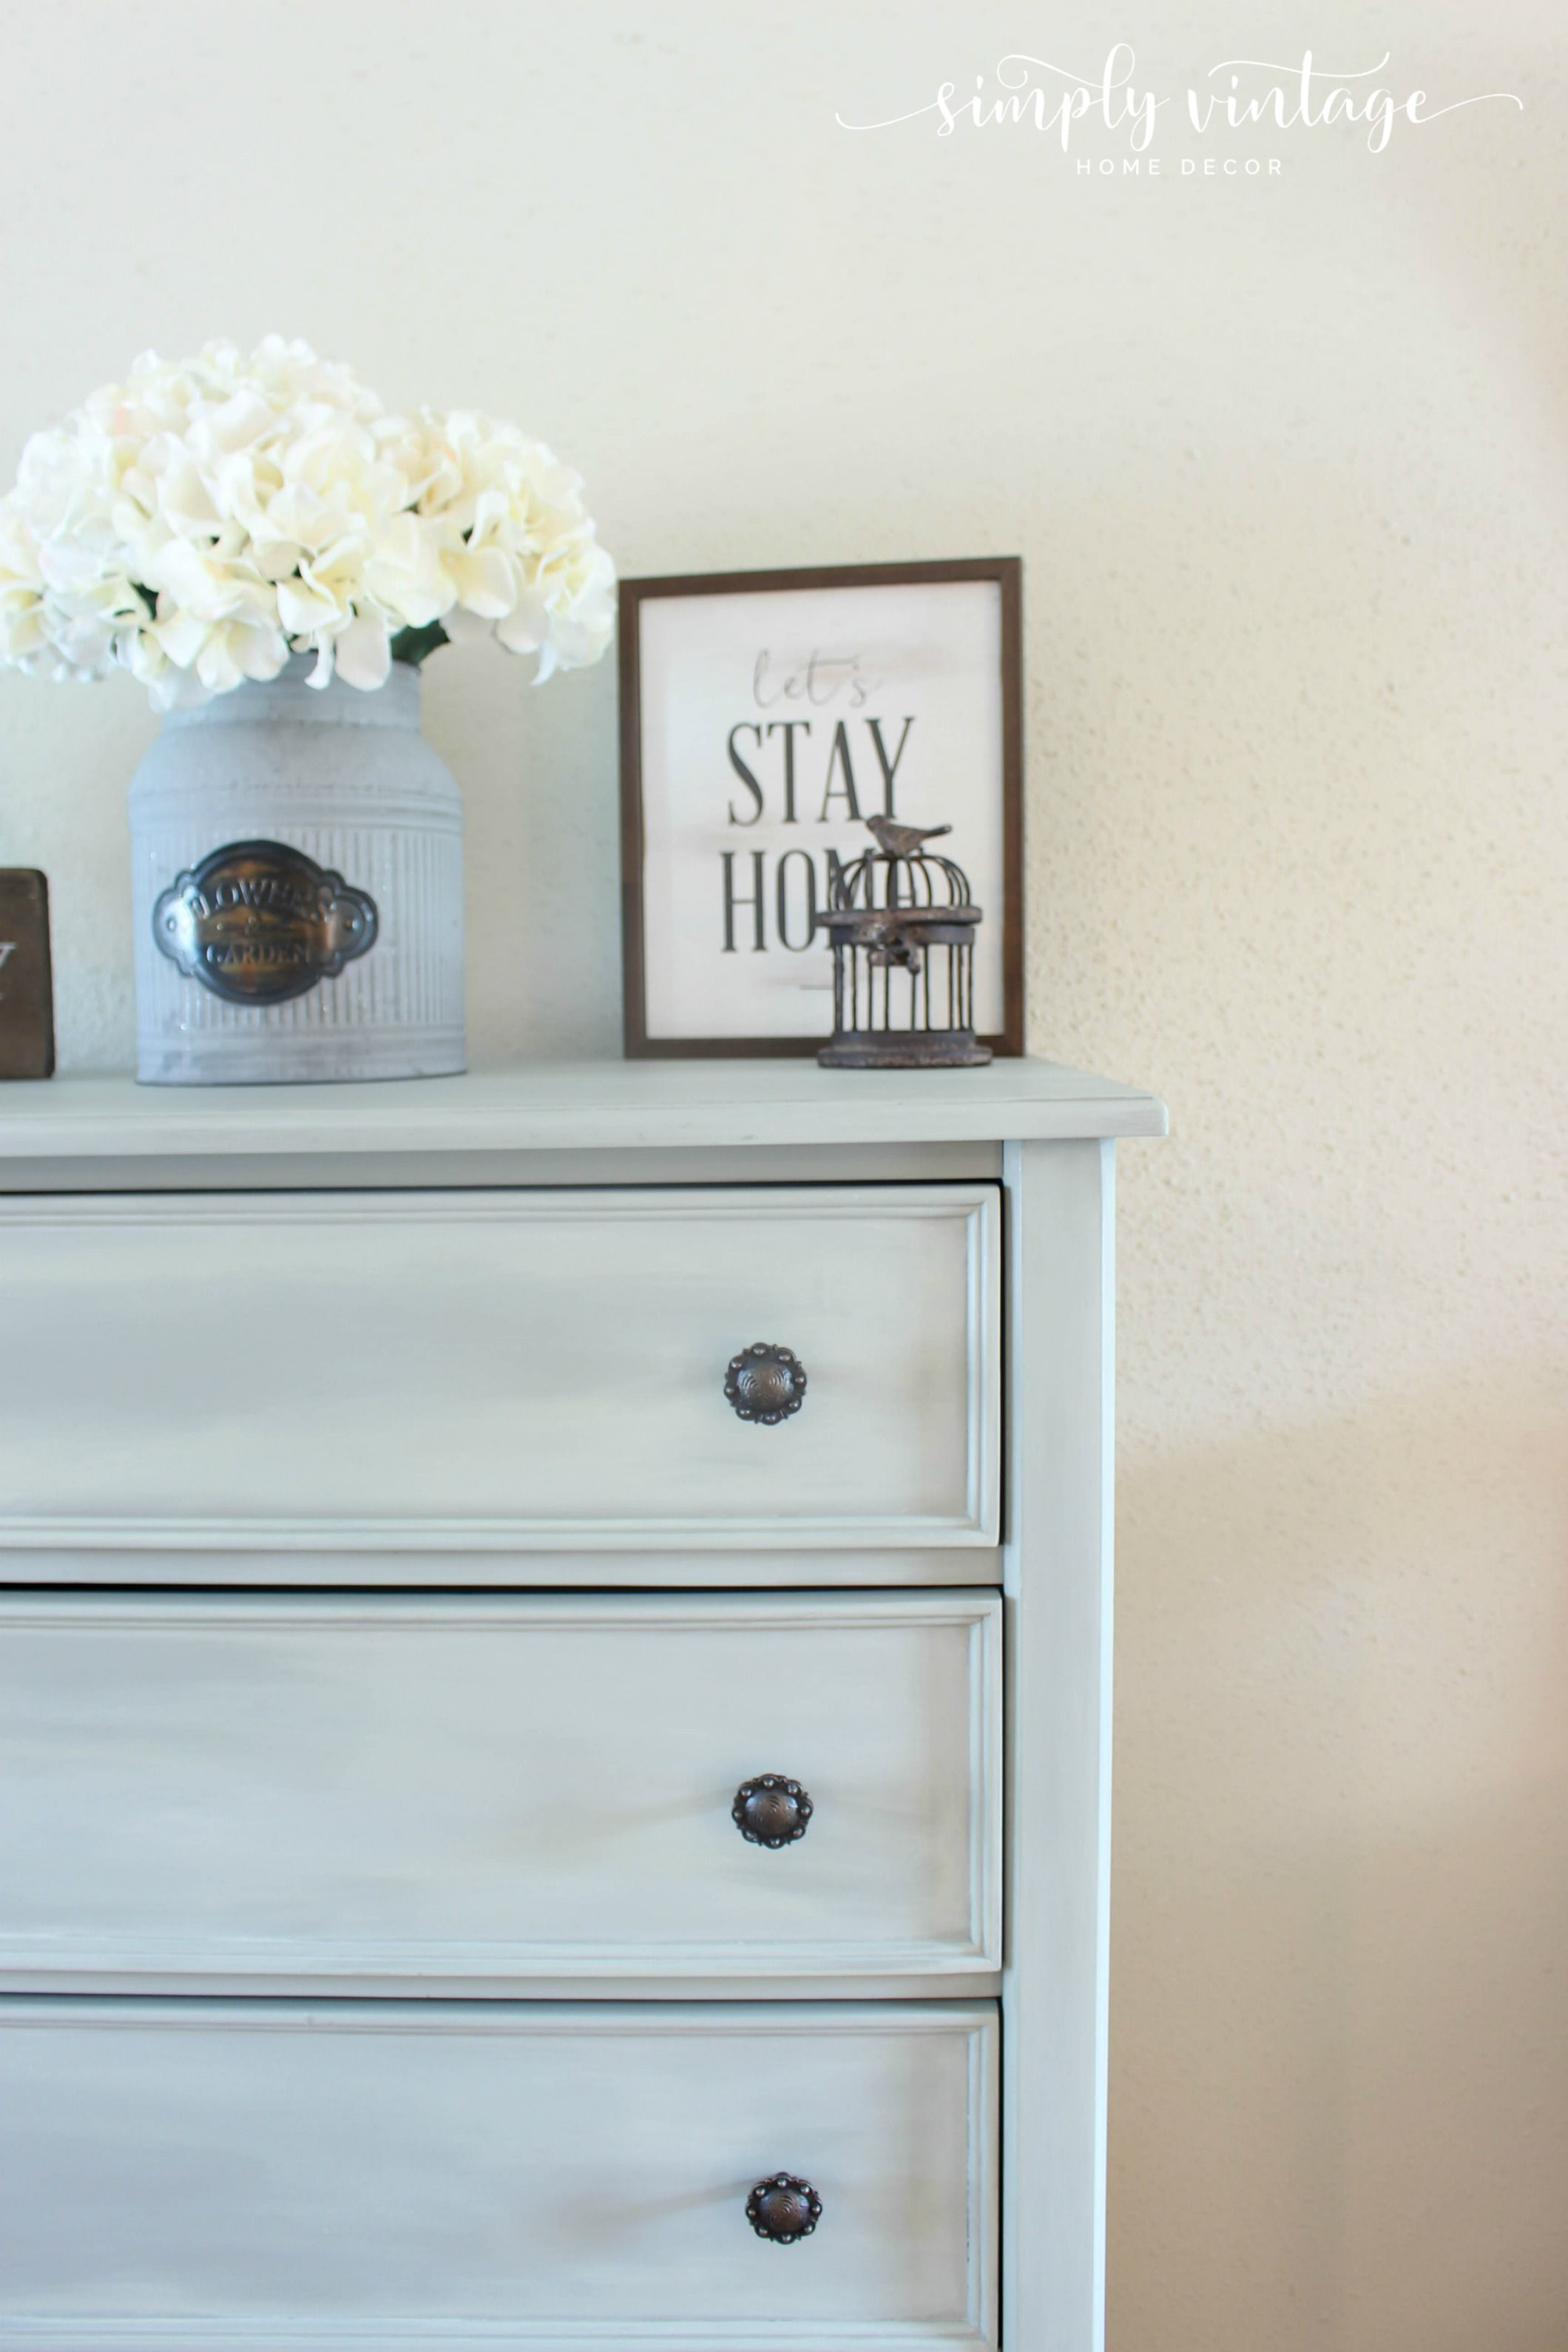 Dresser Makeover How To Color Washing For A Farmhouse Look Homedecor Paintedfurniture Chalkpaint Farmhousestyle Farmhousedecor Diy